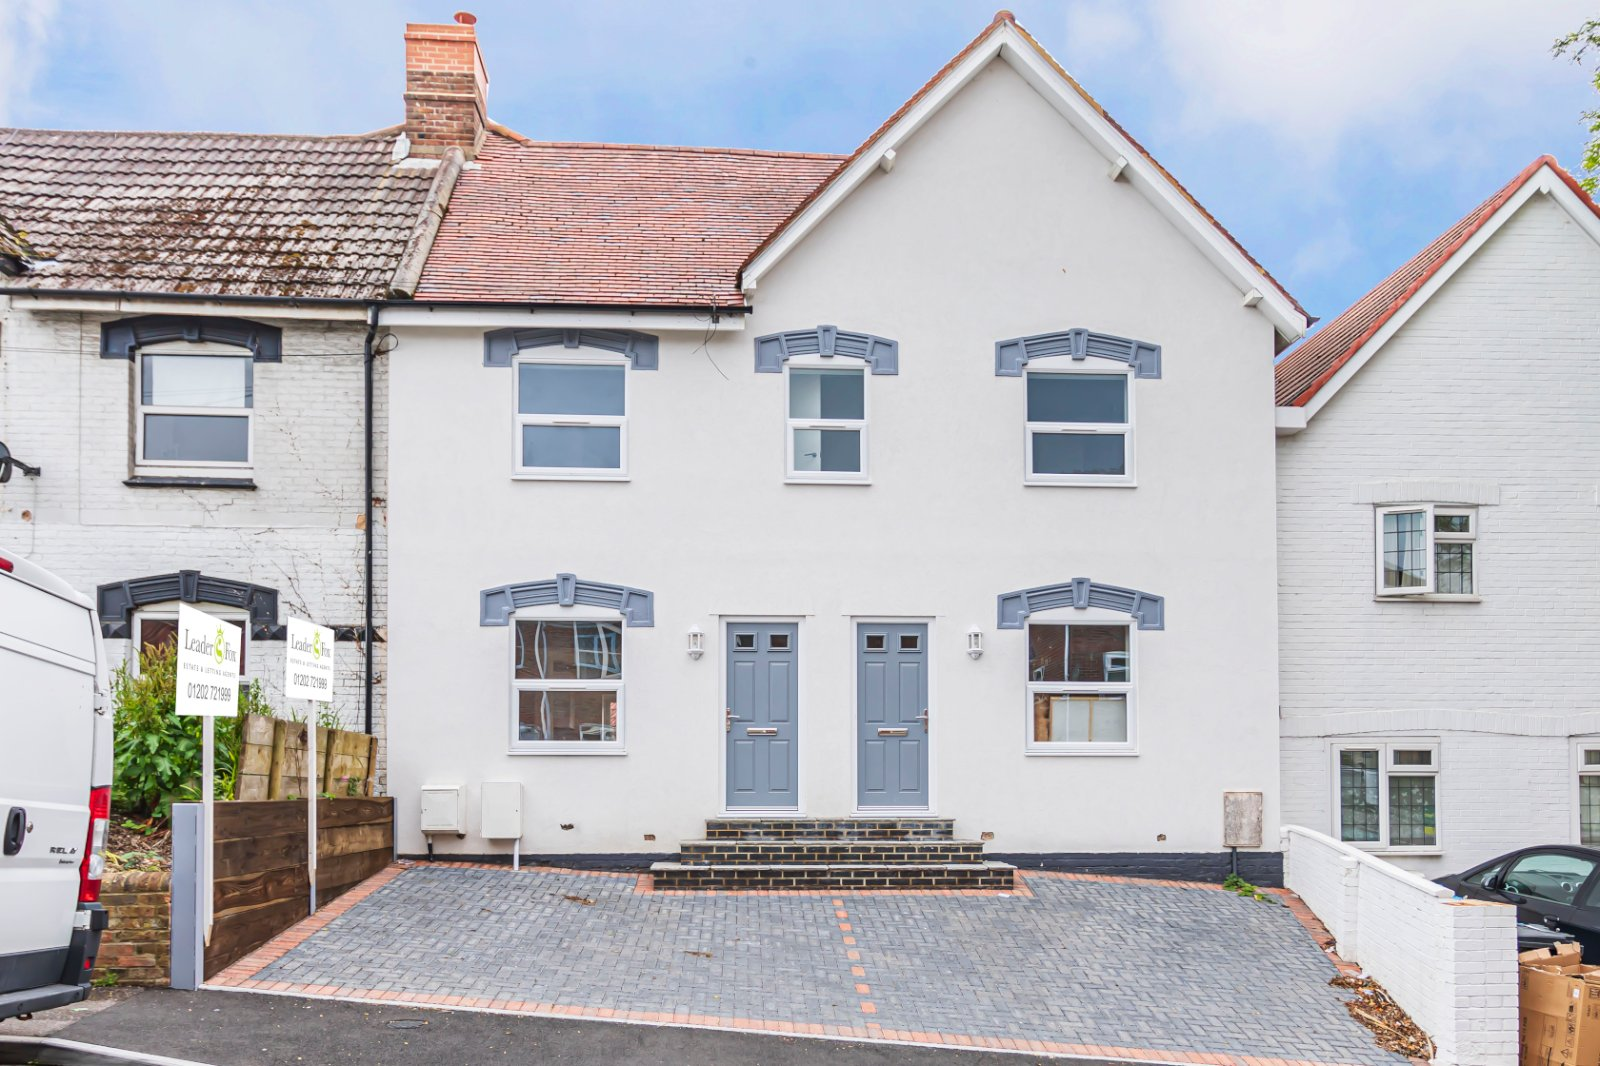 2 bed house for sale in Langley Road, Lower Parkstone - Property Image 1